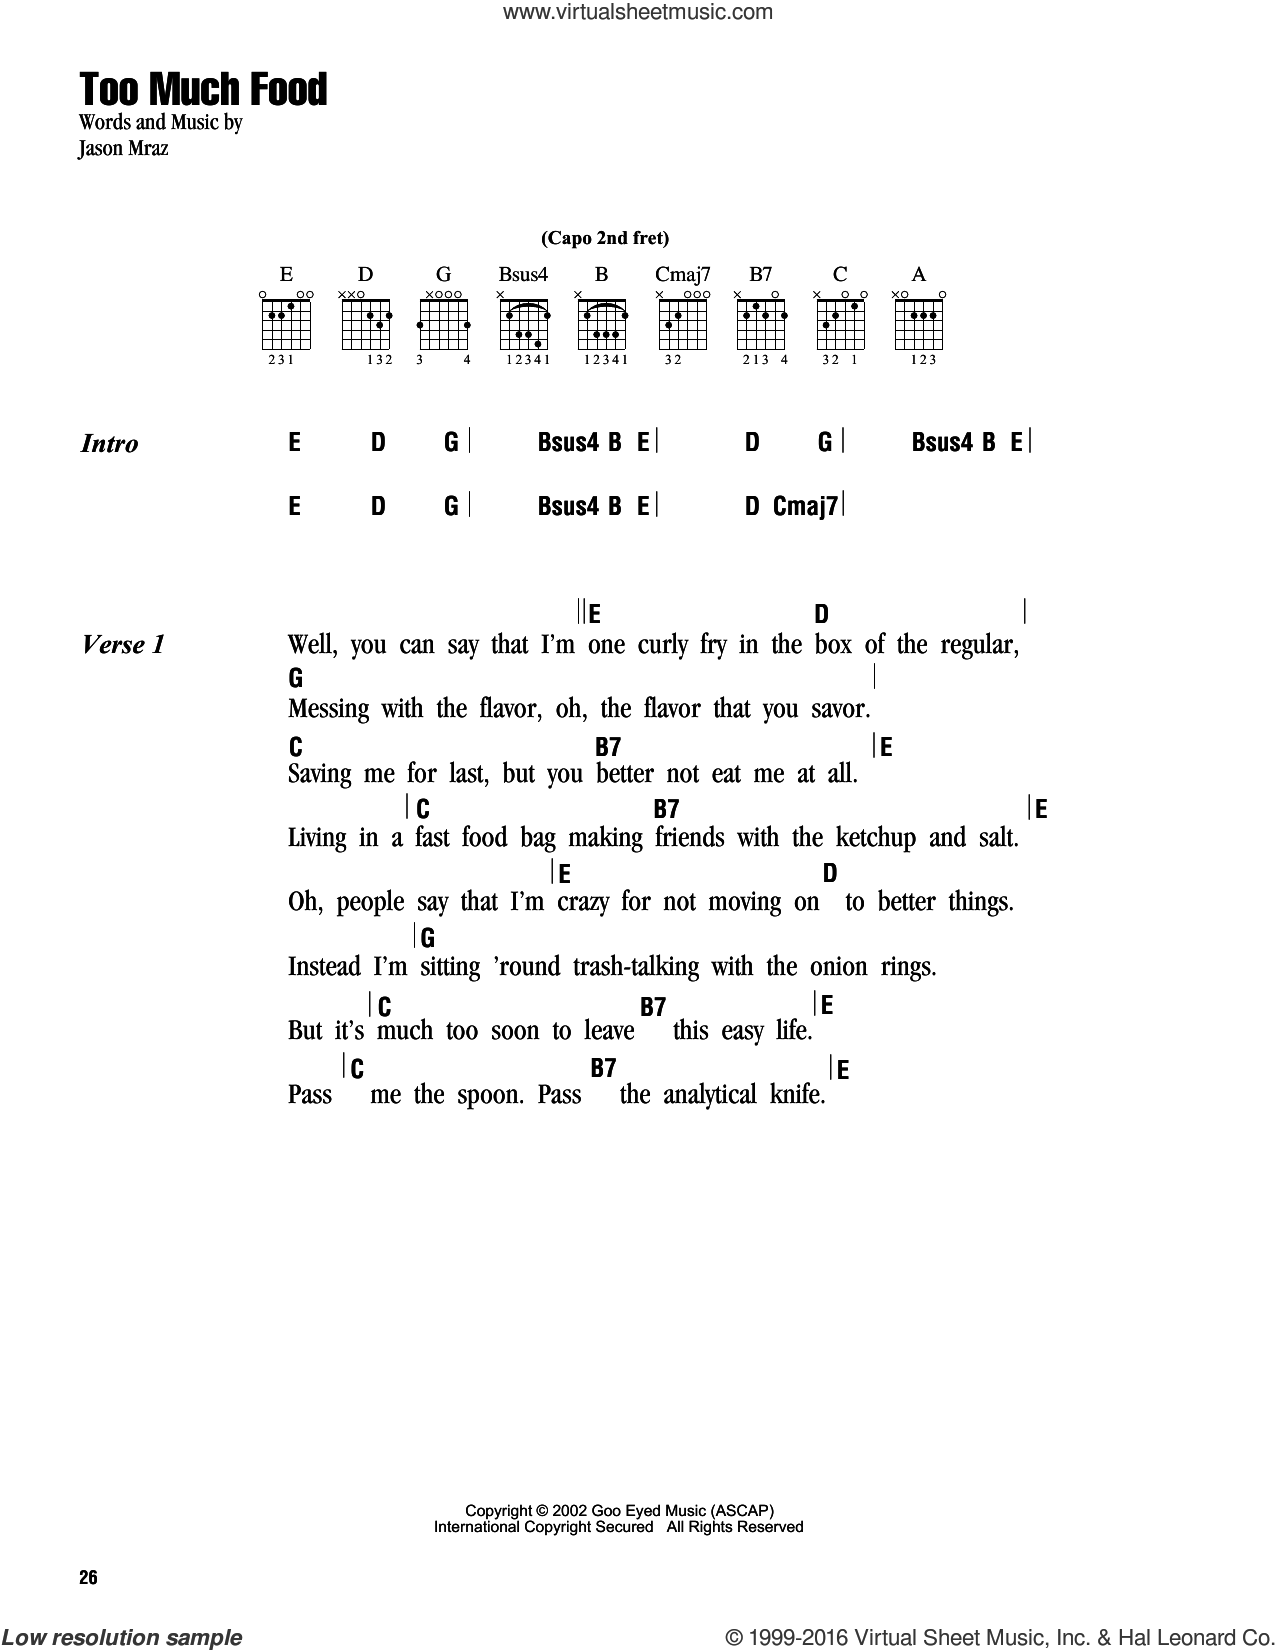 Too Much Food sheet music for guitar (chords) by Jason Mraz, intermediate skill level